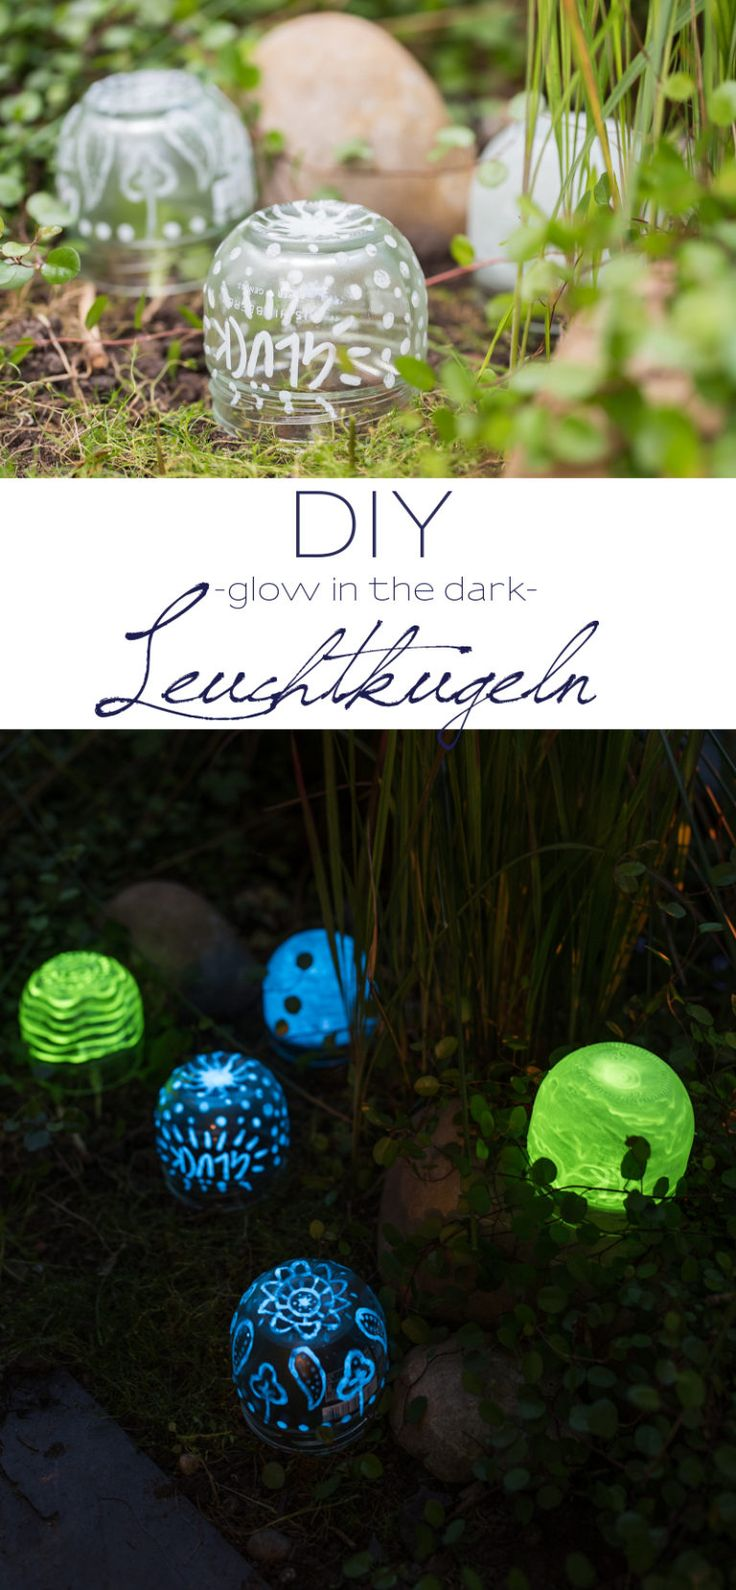 DIY – Gartendeko: Mondscheinkugeln (glow in the dark